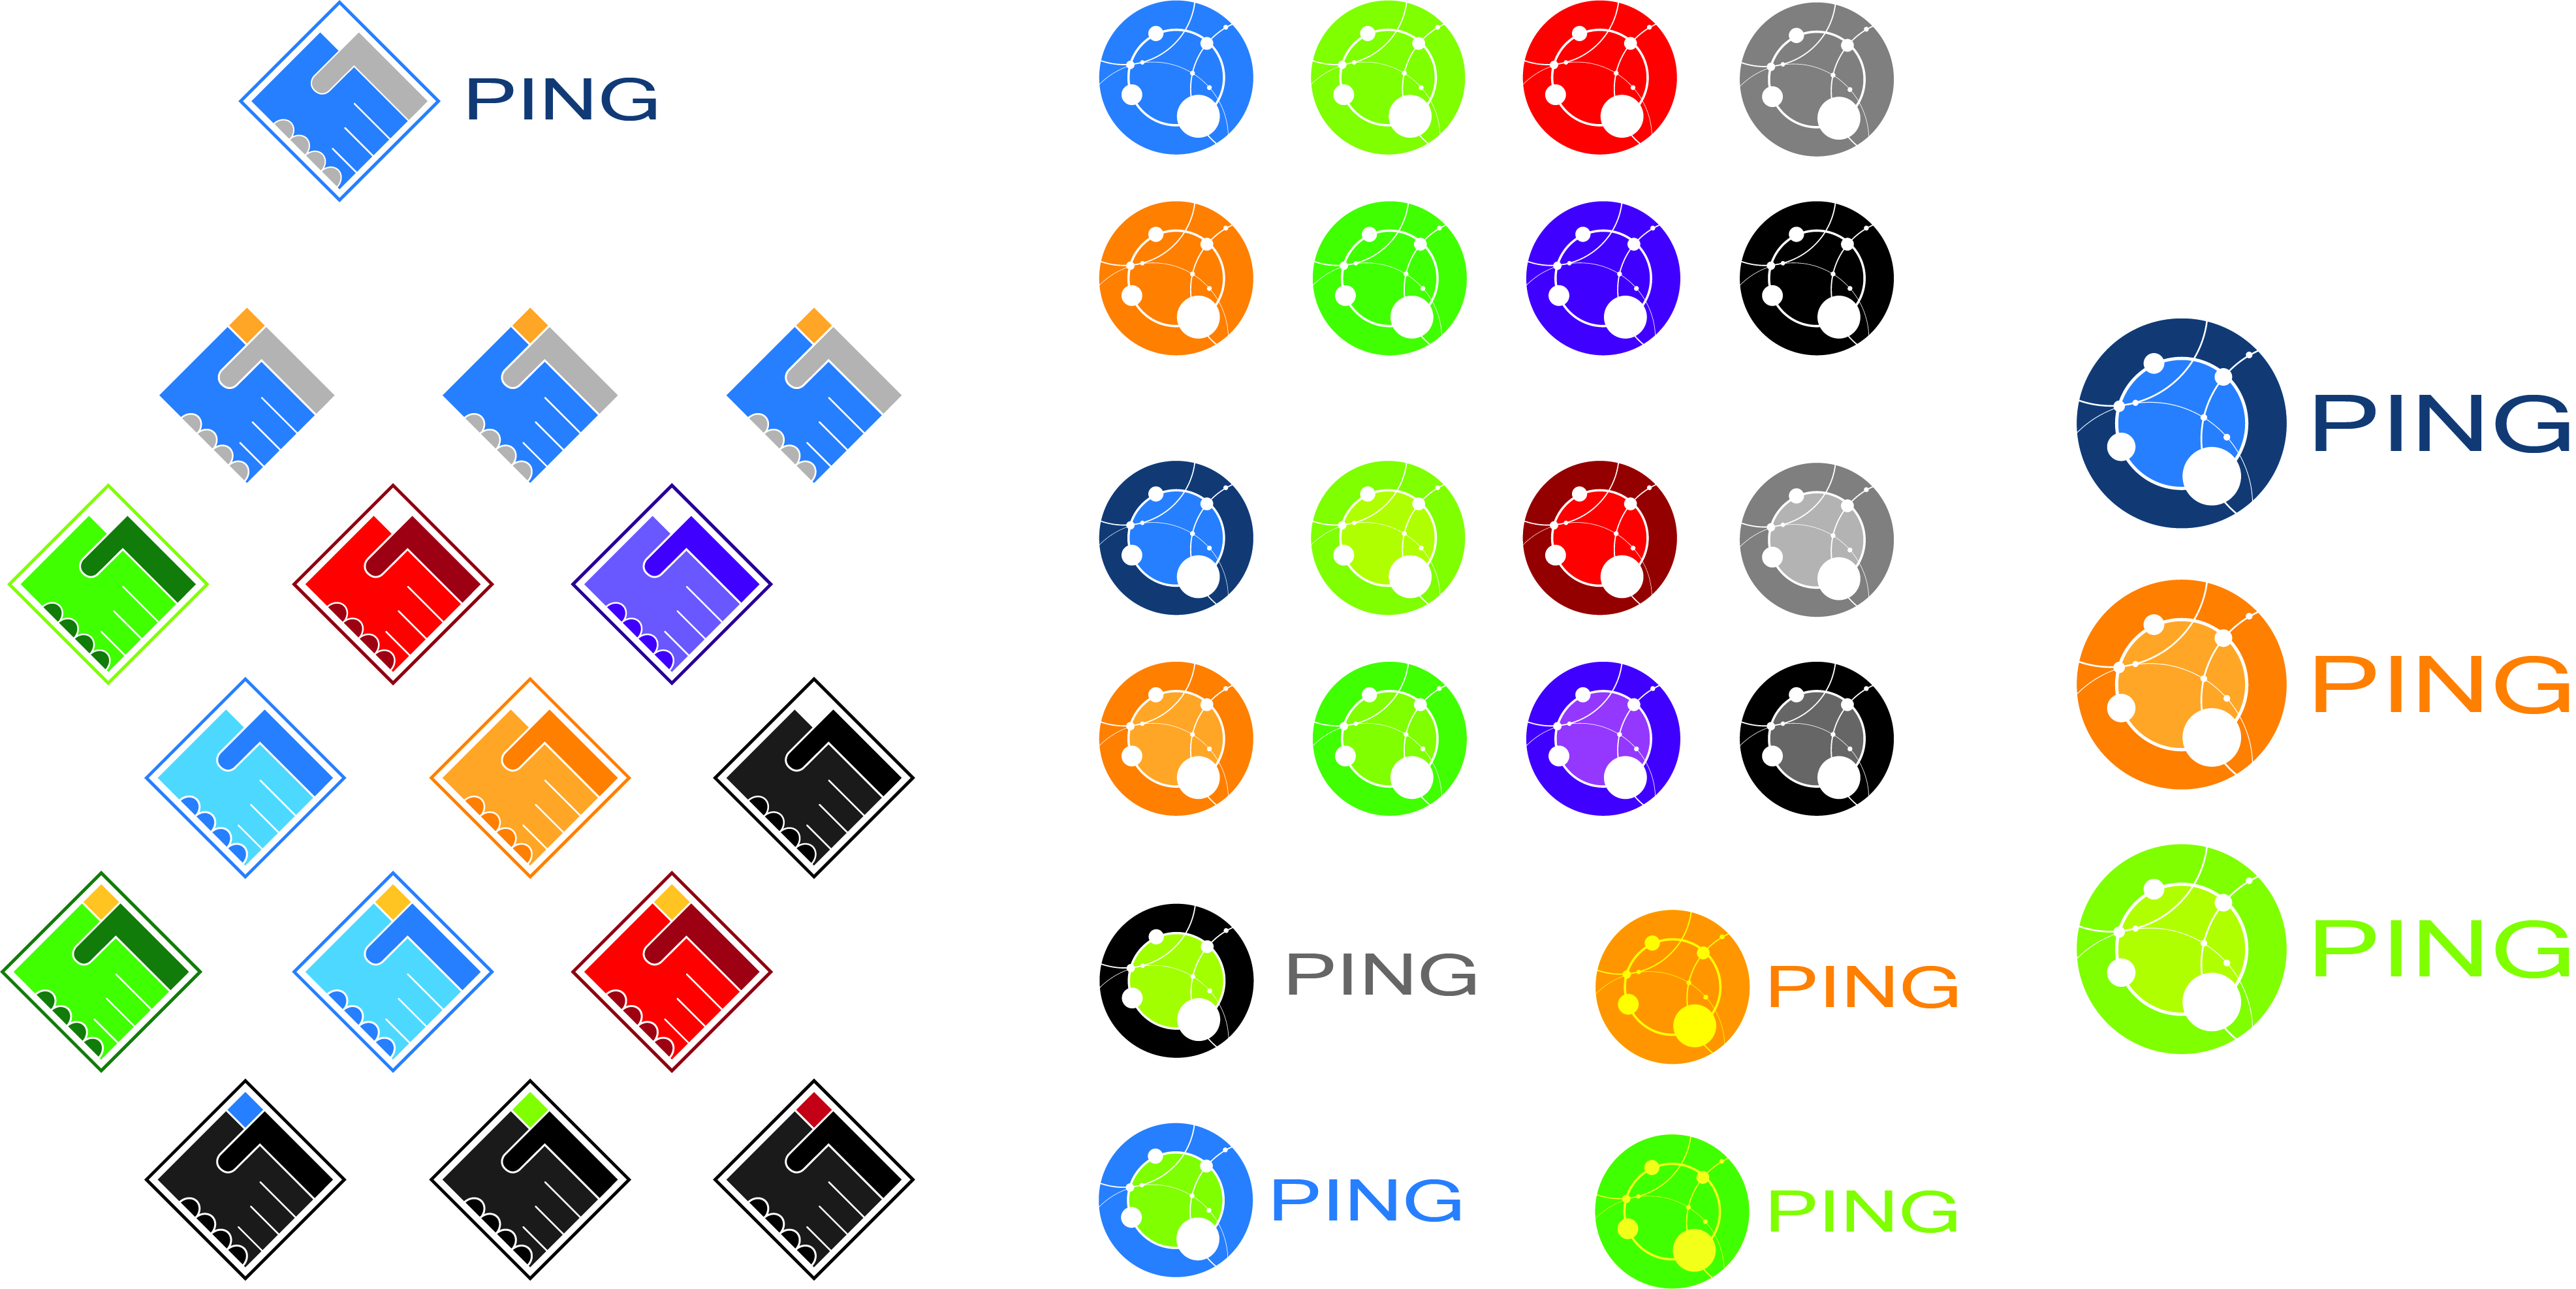 logo creation for ping network group by CVP